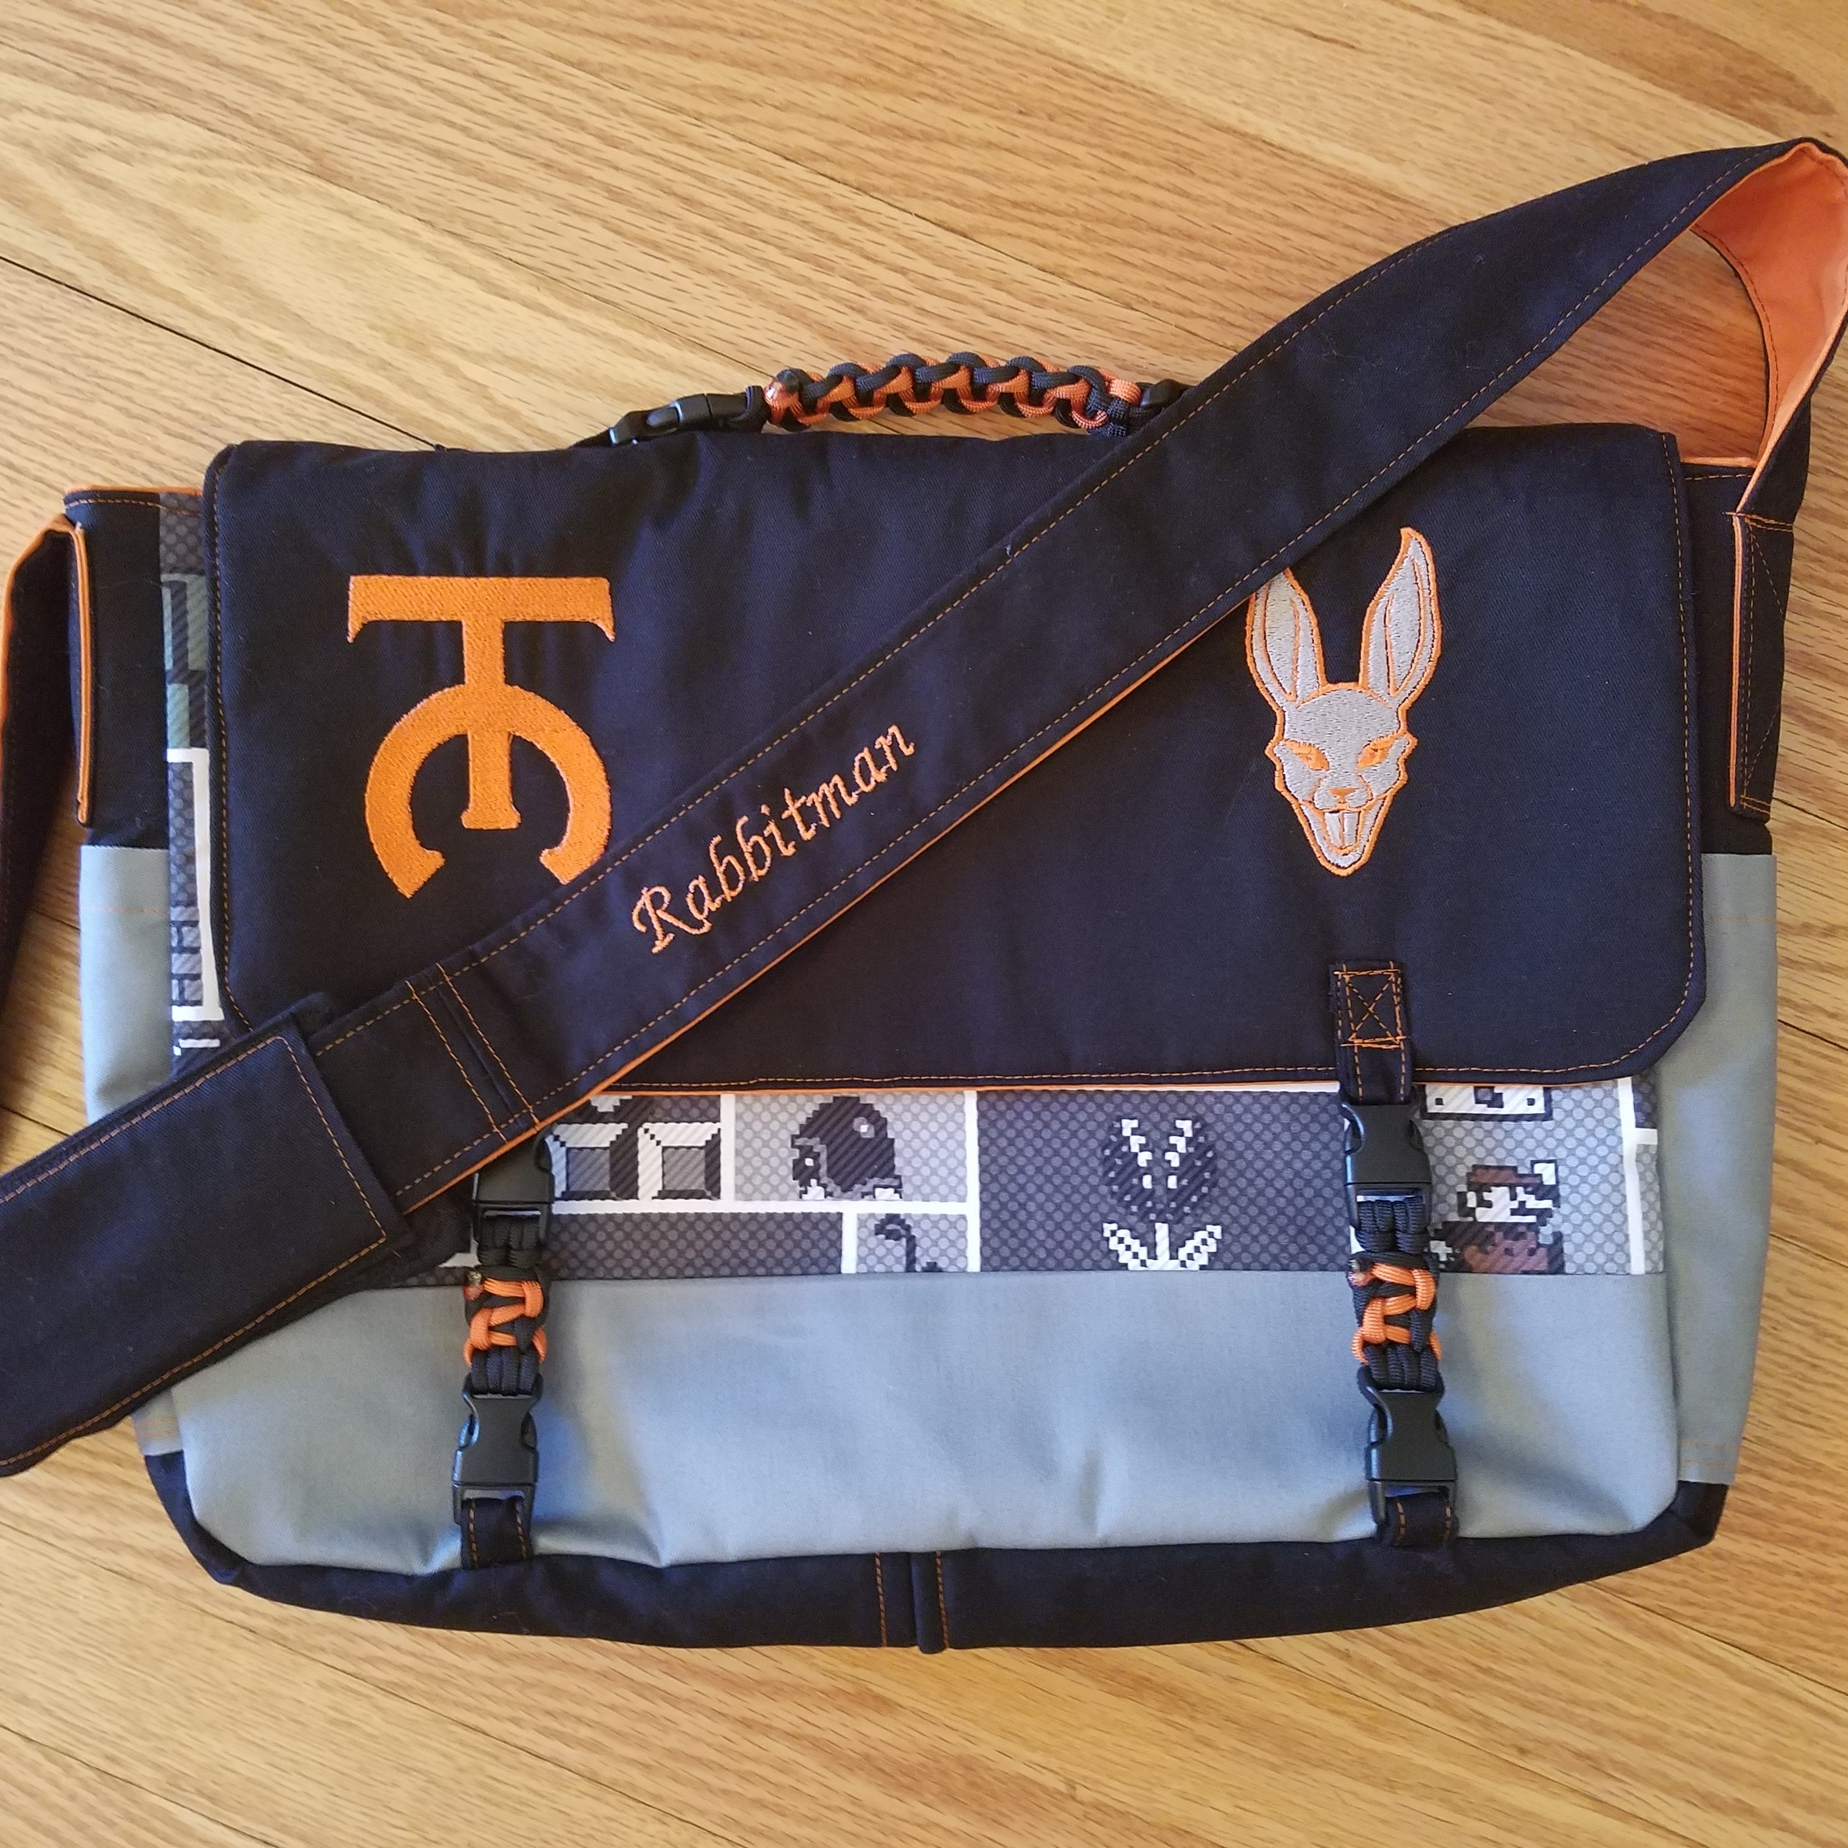 Tock Custom Rabbitman109 Bag